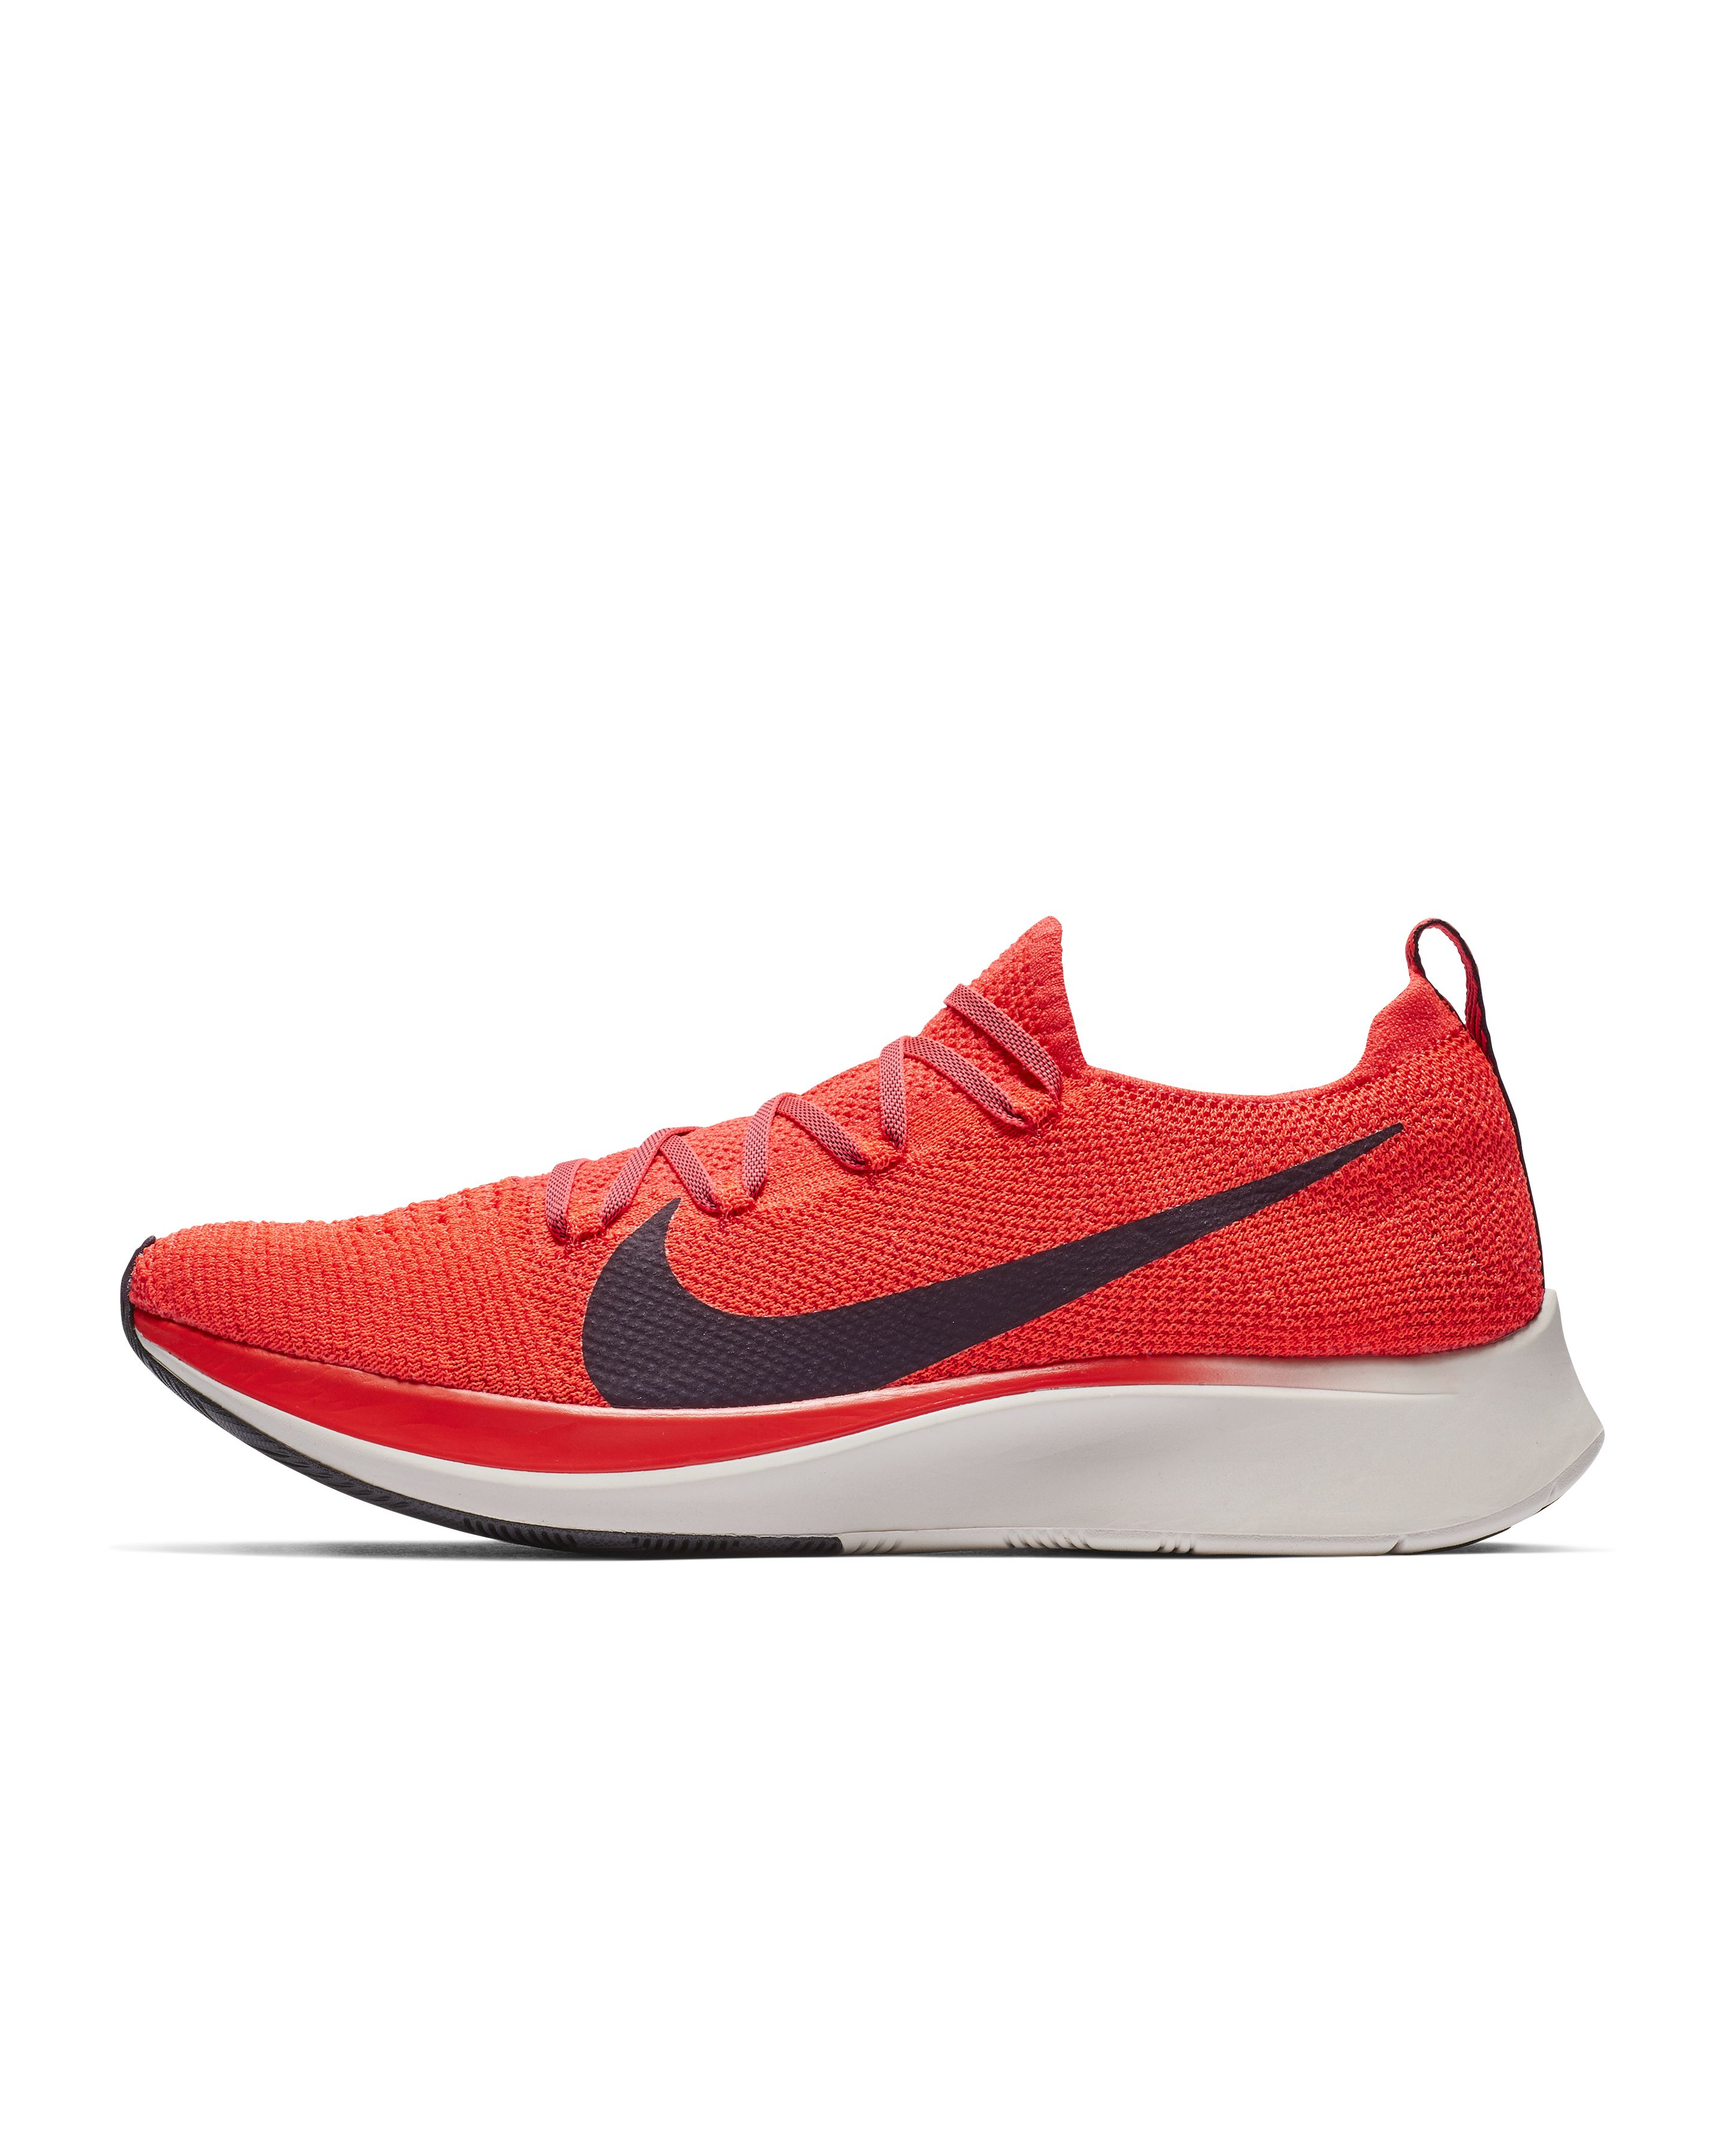 detailed look 6bb57 cd5d5 10 Best Nike Shoes For Men